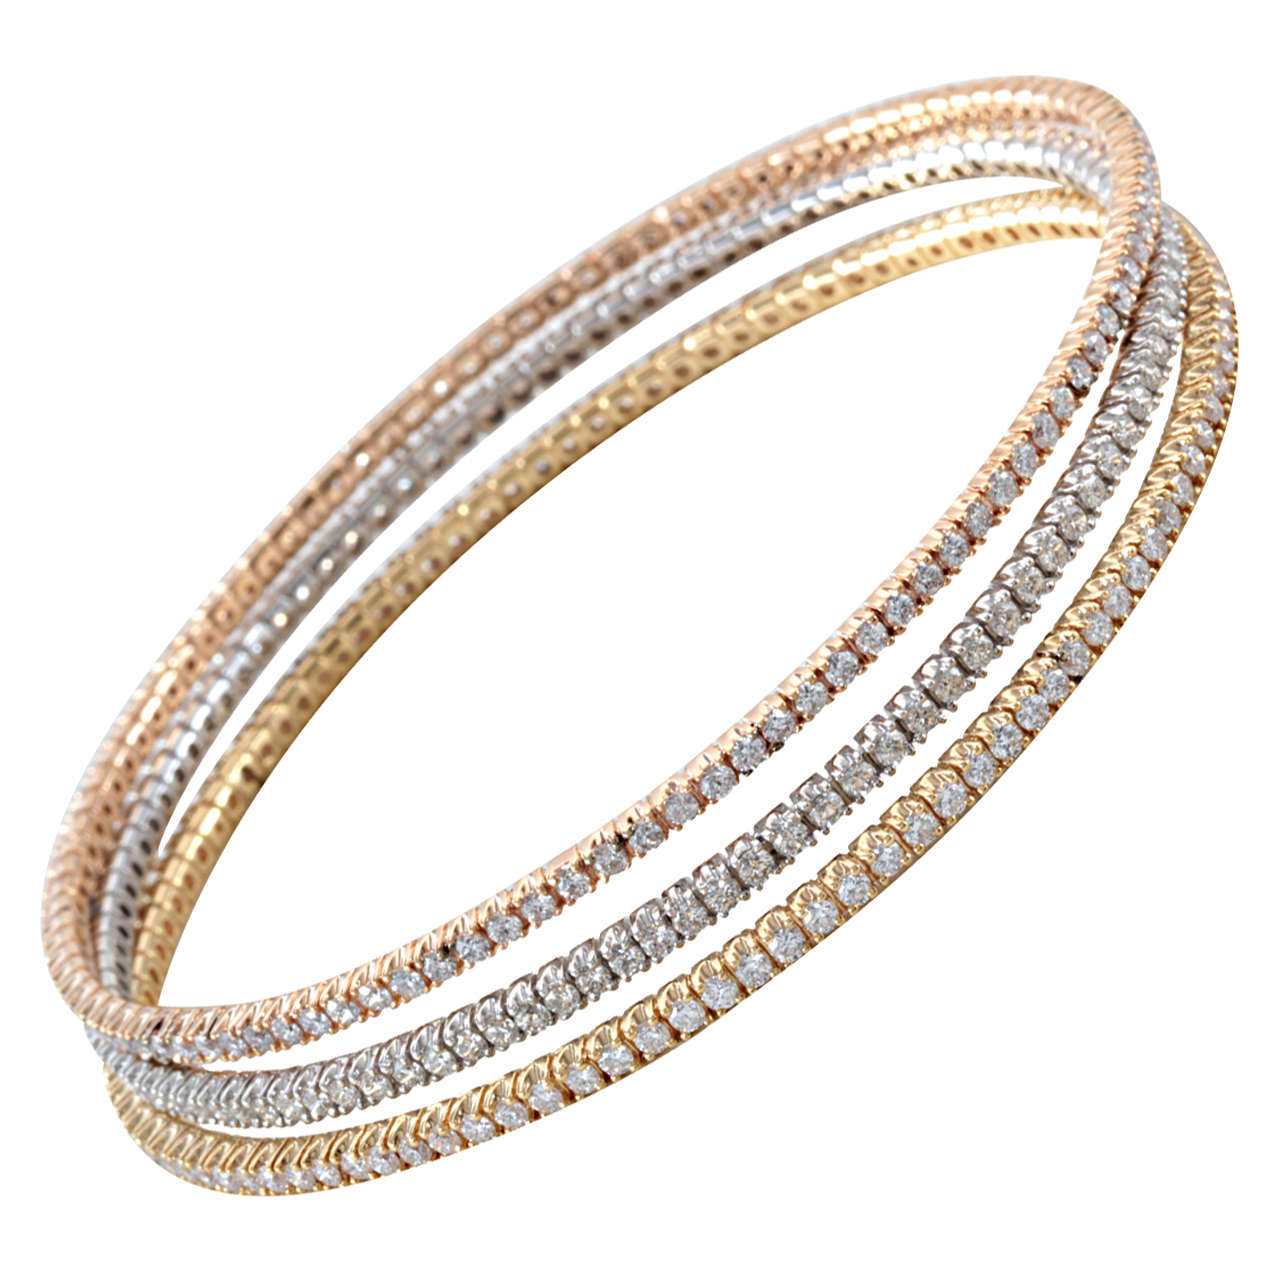 messika small bracelet bangles en bangle joaillerie noa birks rg move rose gold